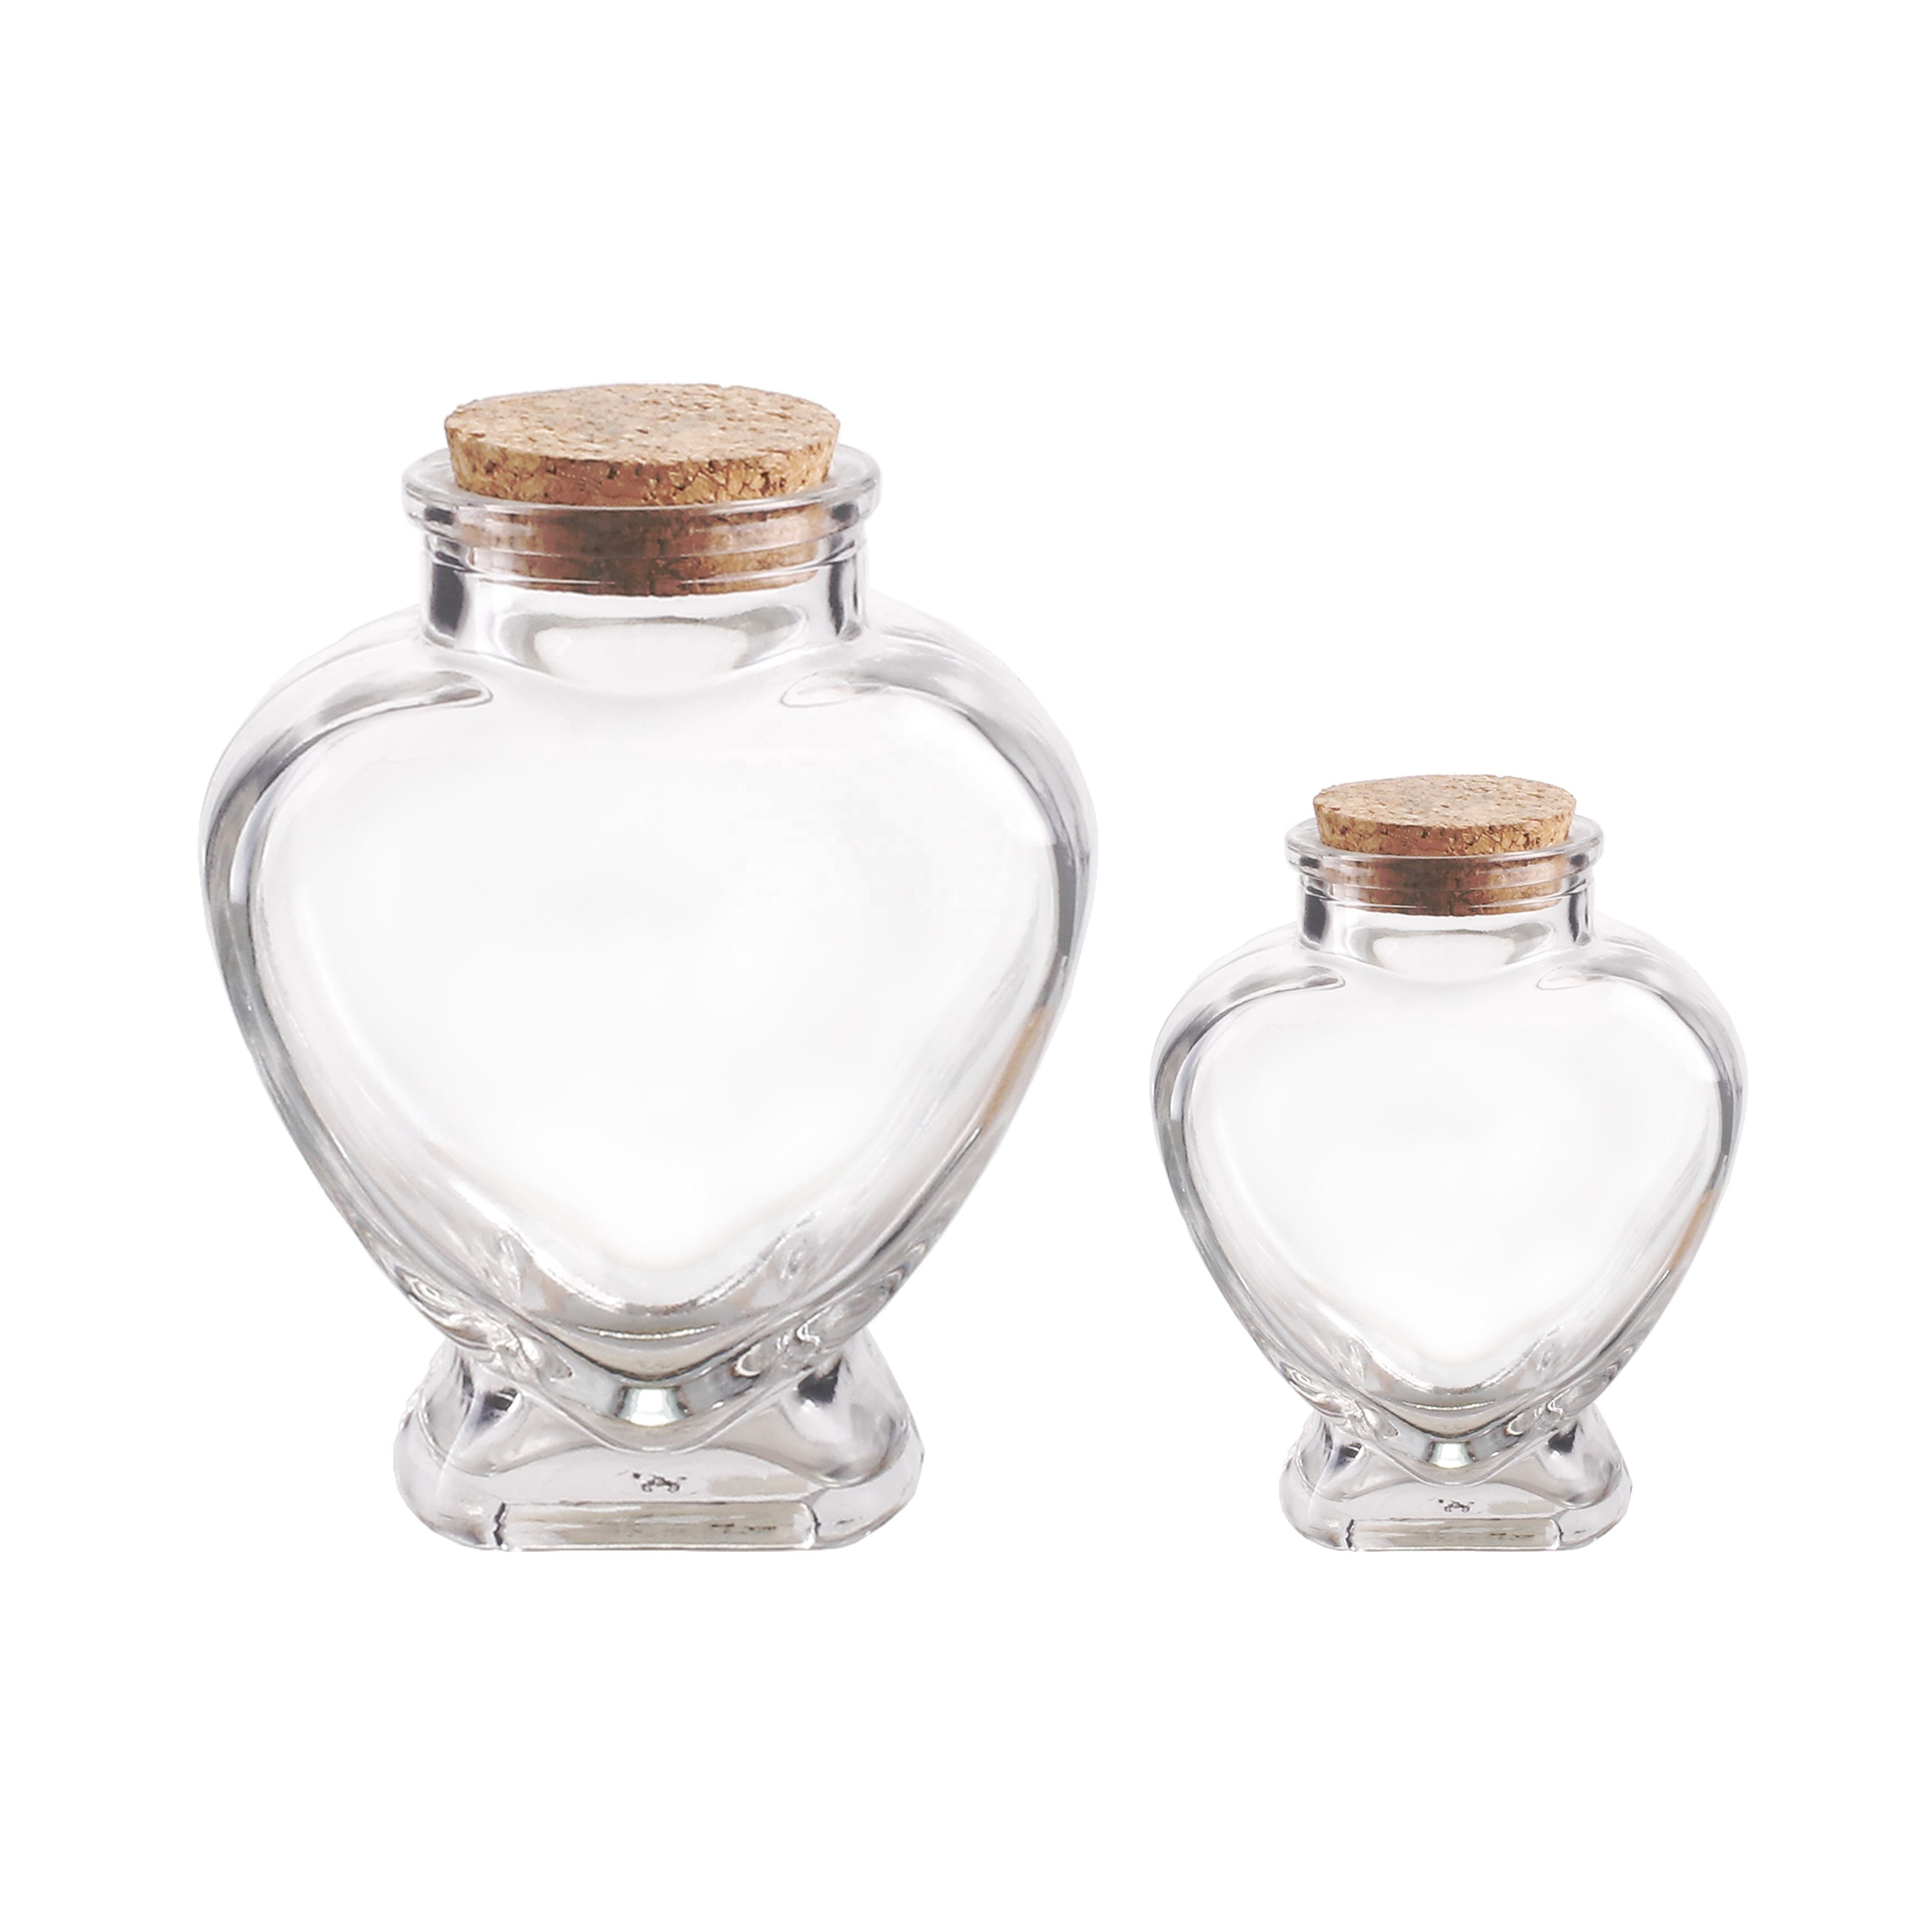 50ml 150ml heart lovely shaped candy chocolate glass jar with cork lid